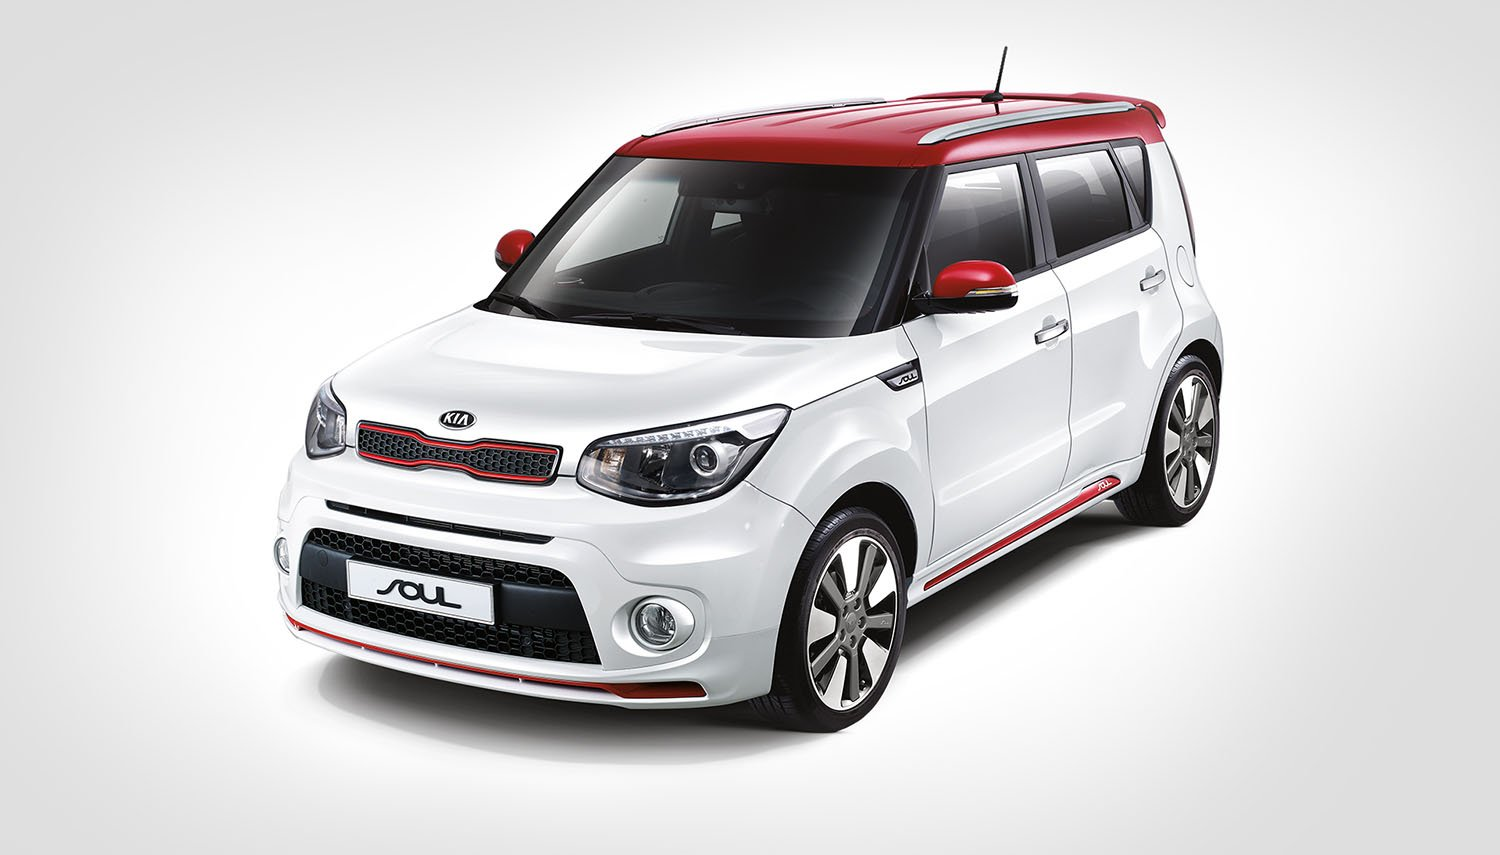 2017 kia soul update revealed in korea australian revisions due by year s end photos 1 of 12. Black Bedroom Furniture Sets. Home Design Ideas